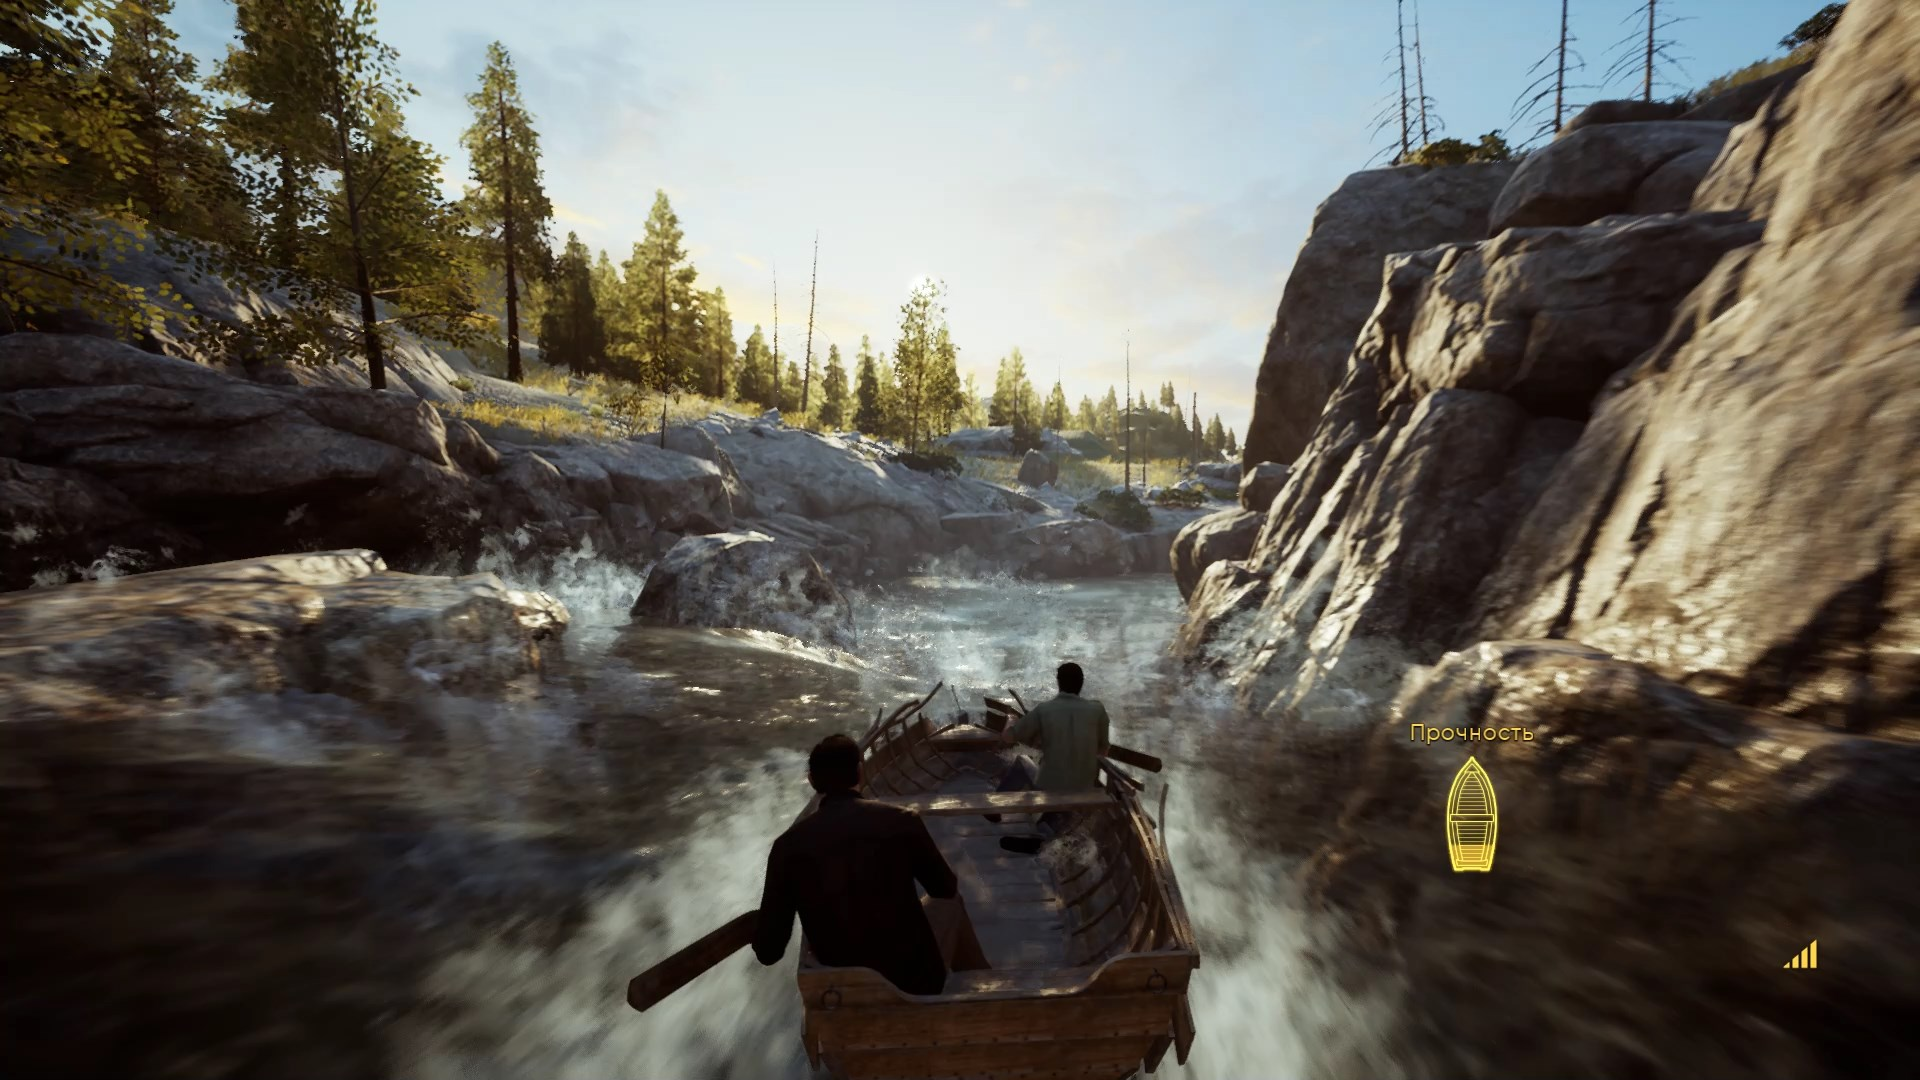 Скриншот *A Way Out [PS4] 5.05 / 6.72 / 7.02 [EUR] (2018) [Русский] (v1.00)*